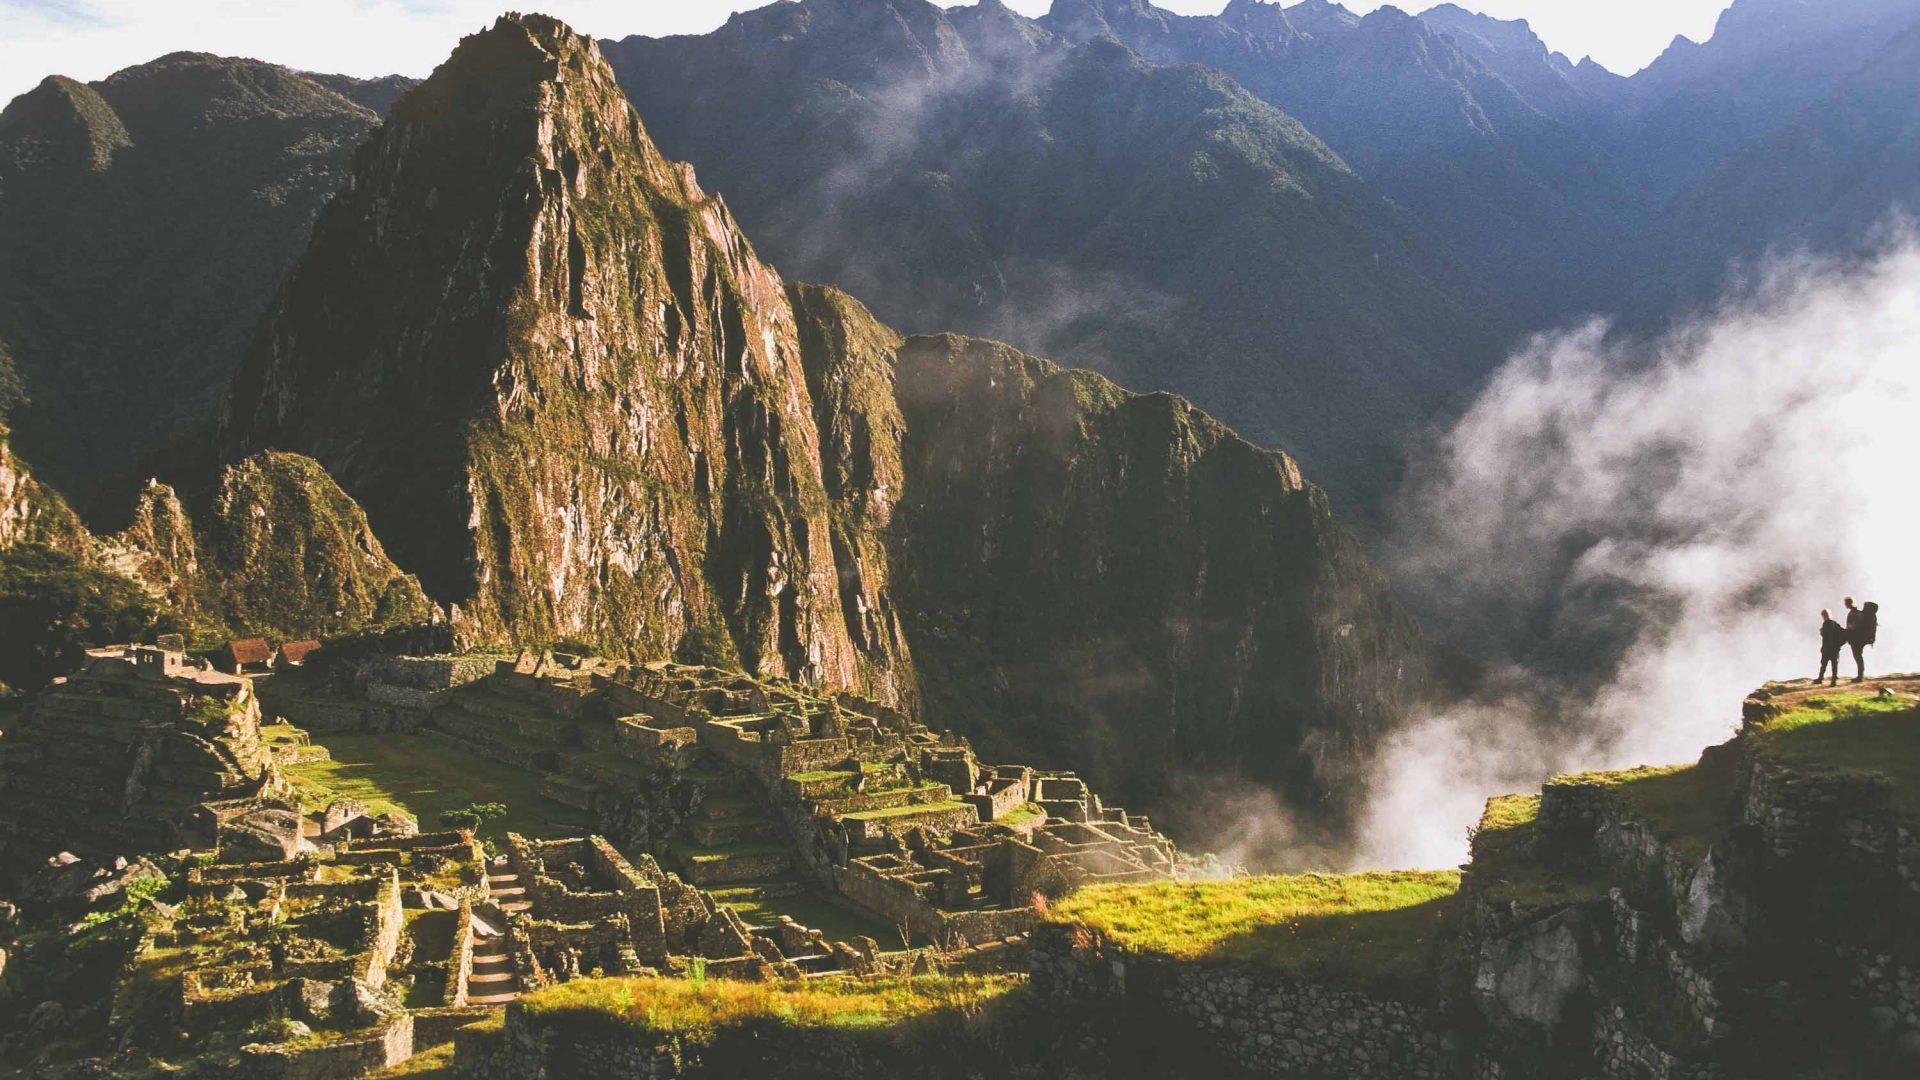 Hikers look out over Machu Picchu.